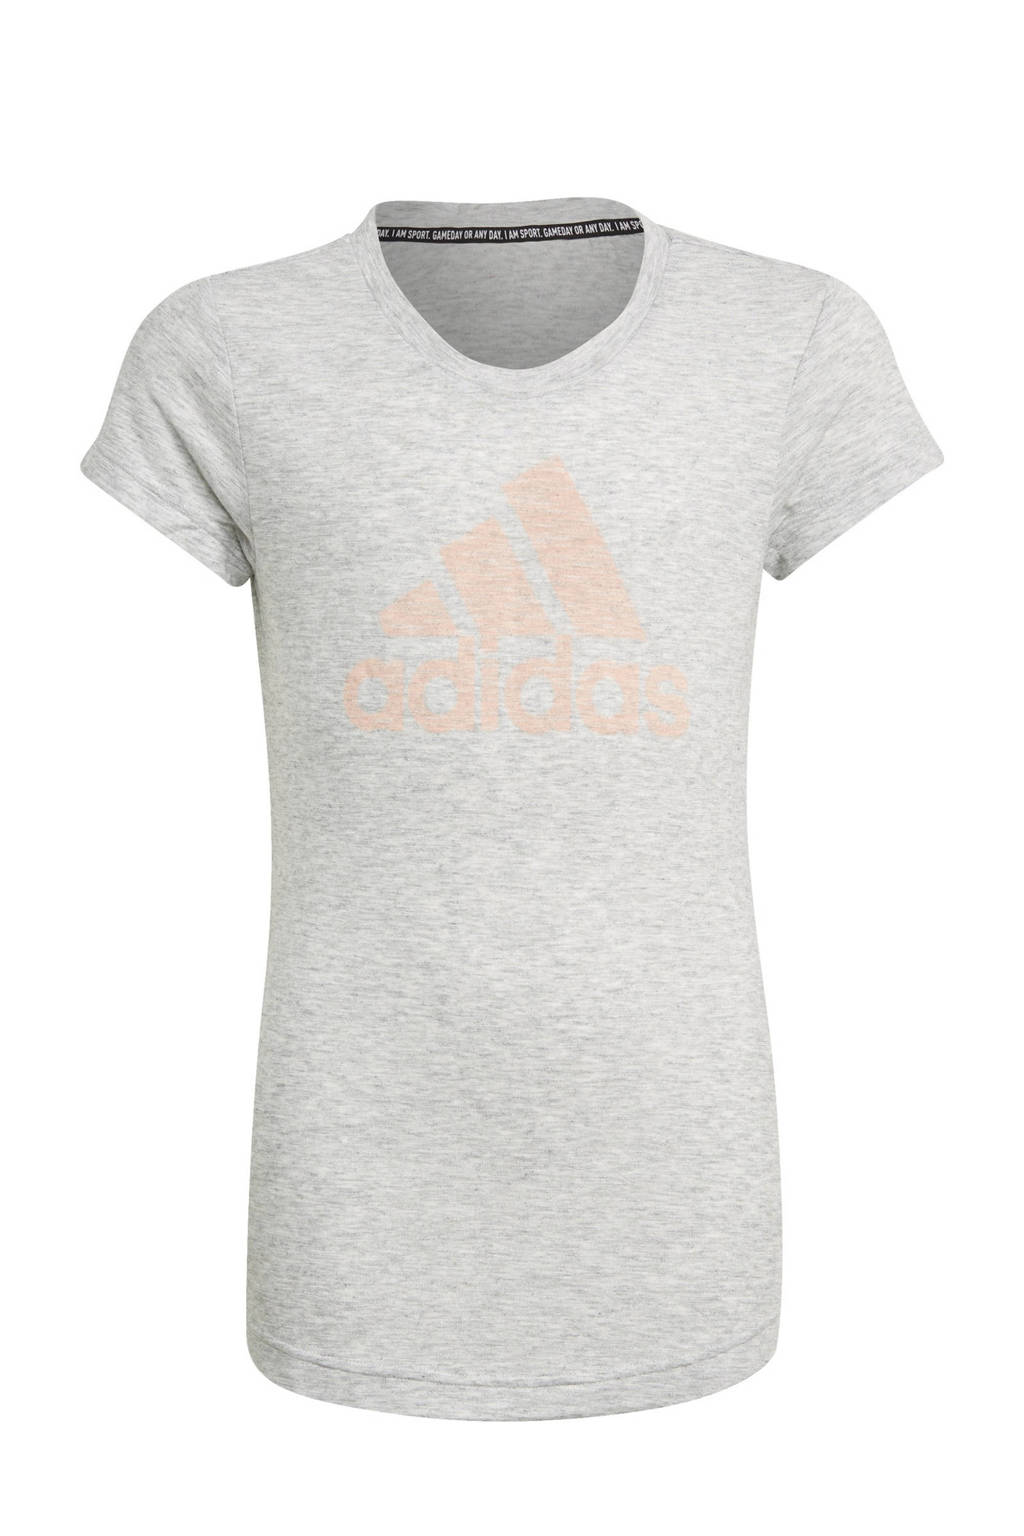 adidas Performance Girls In Power sport T-shirt lichtgrijs/lichtroze, Lichtgrijs/lichtroze